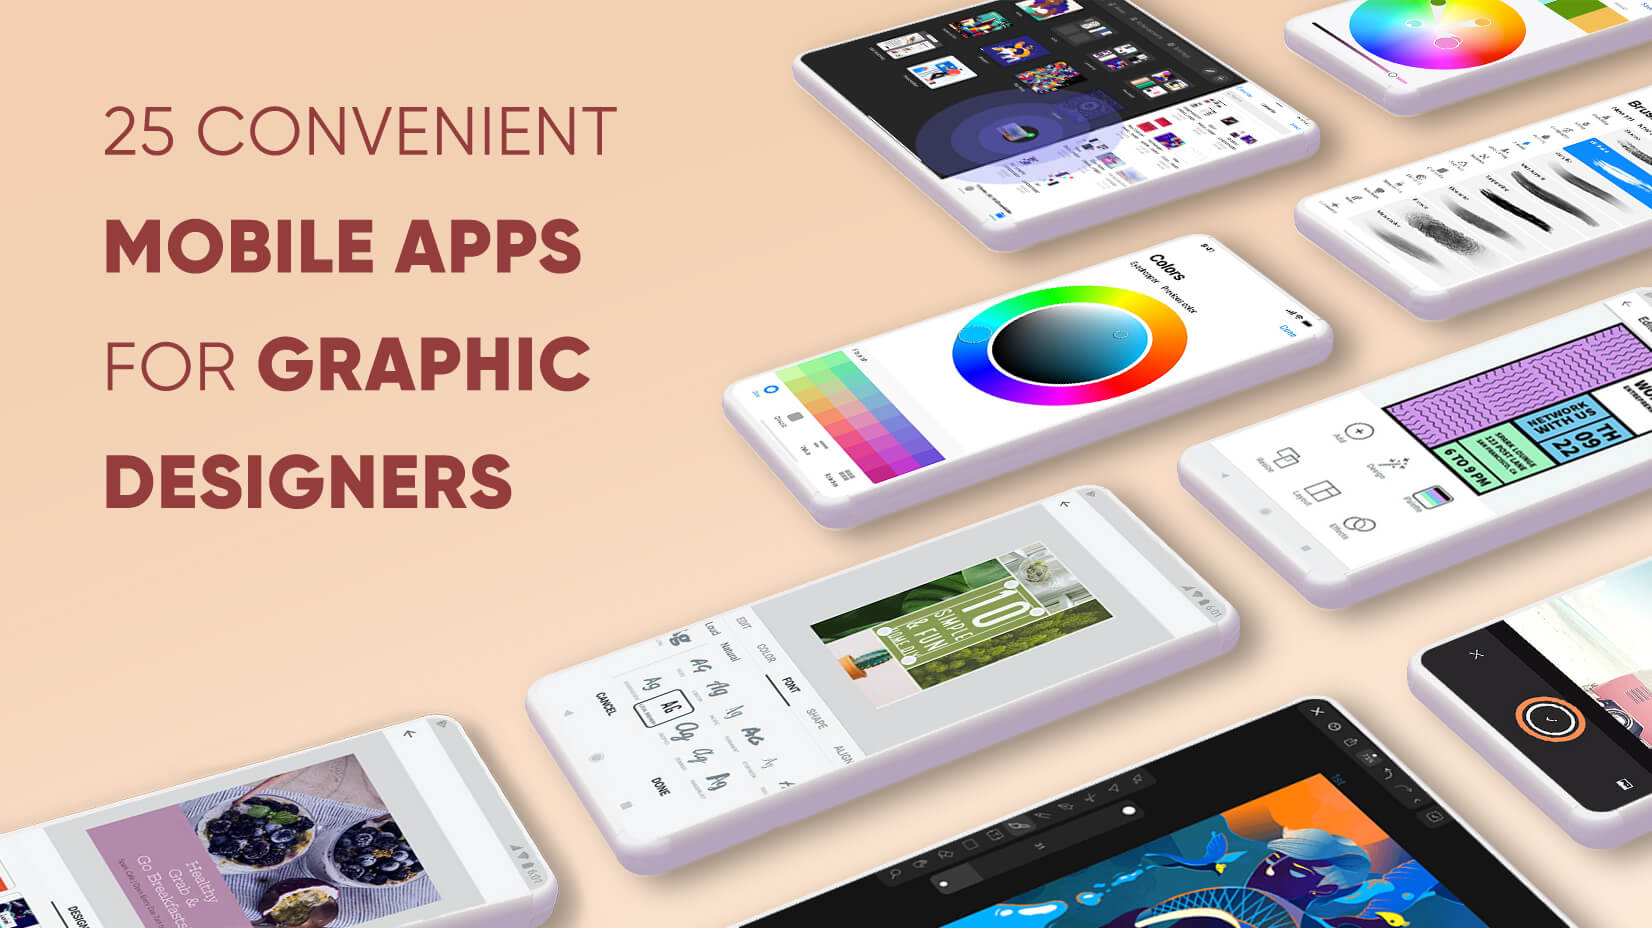 25 Convenient Mobile Apps for Graphic Designers (Android, iOS)